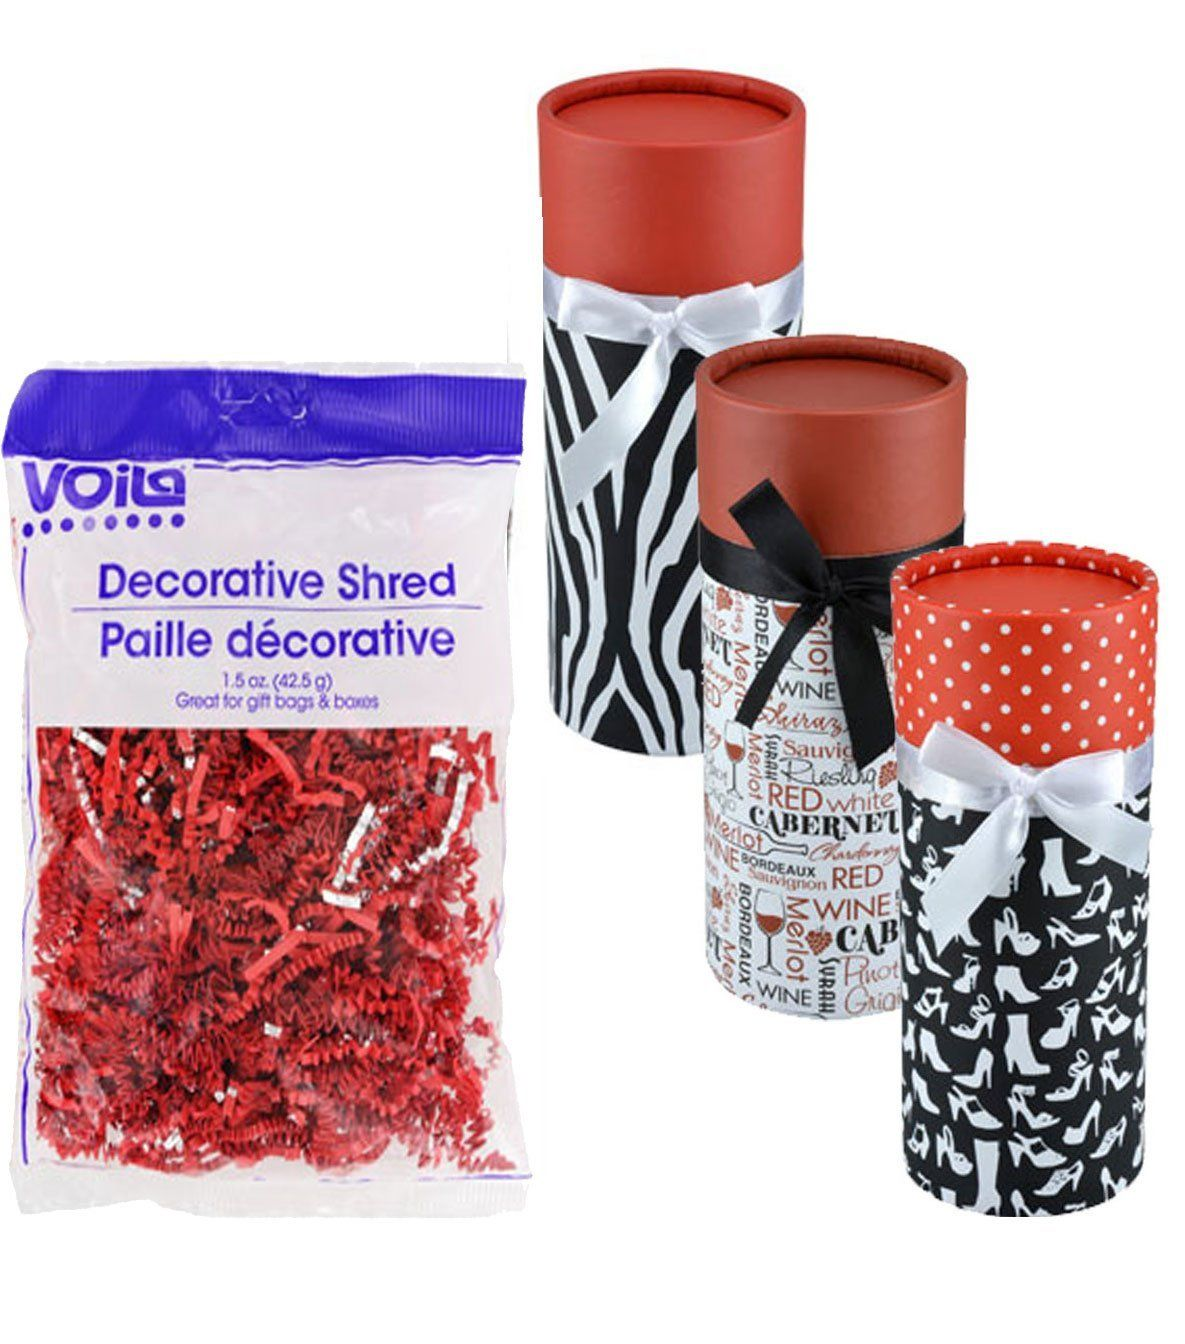 Gift giving essentials celebrate a special occassion with